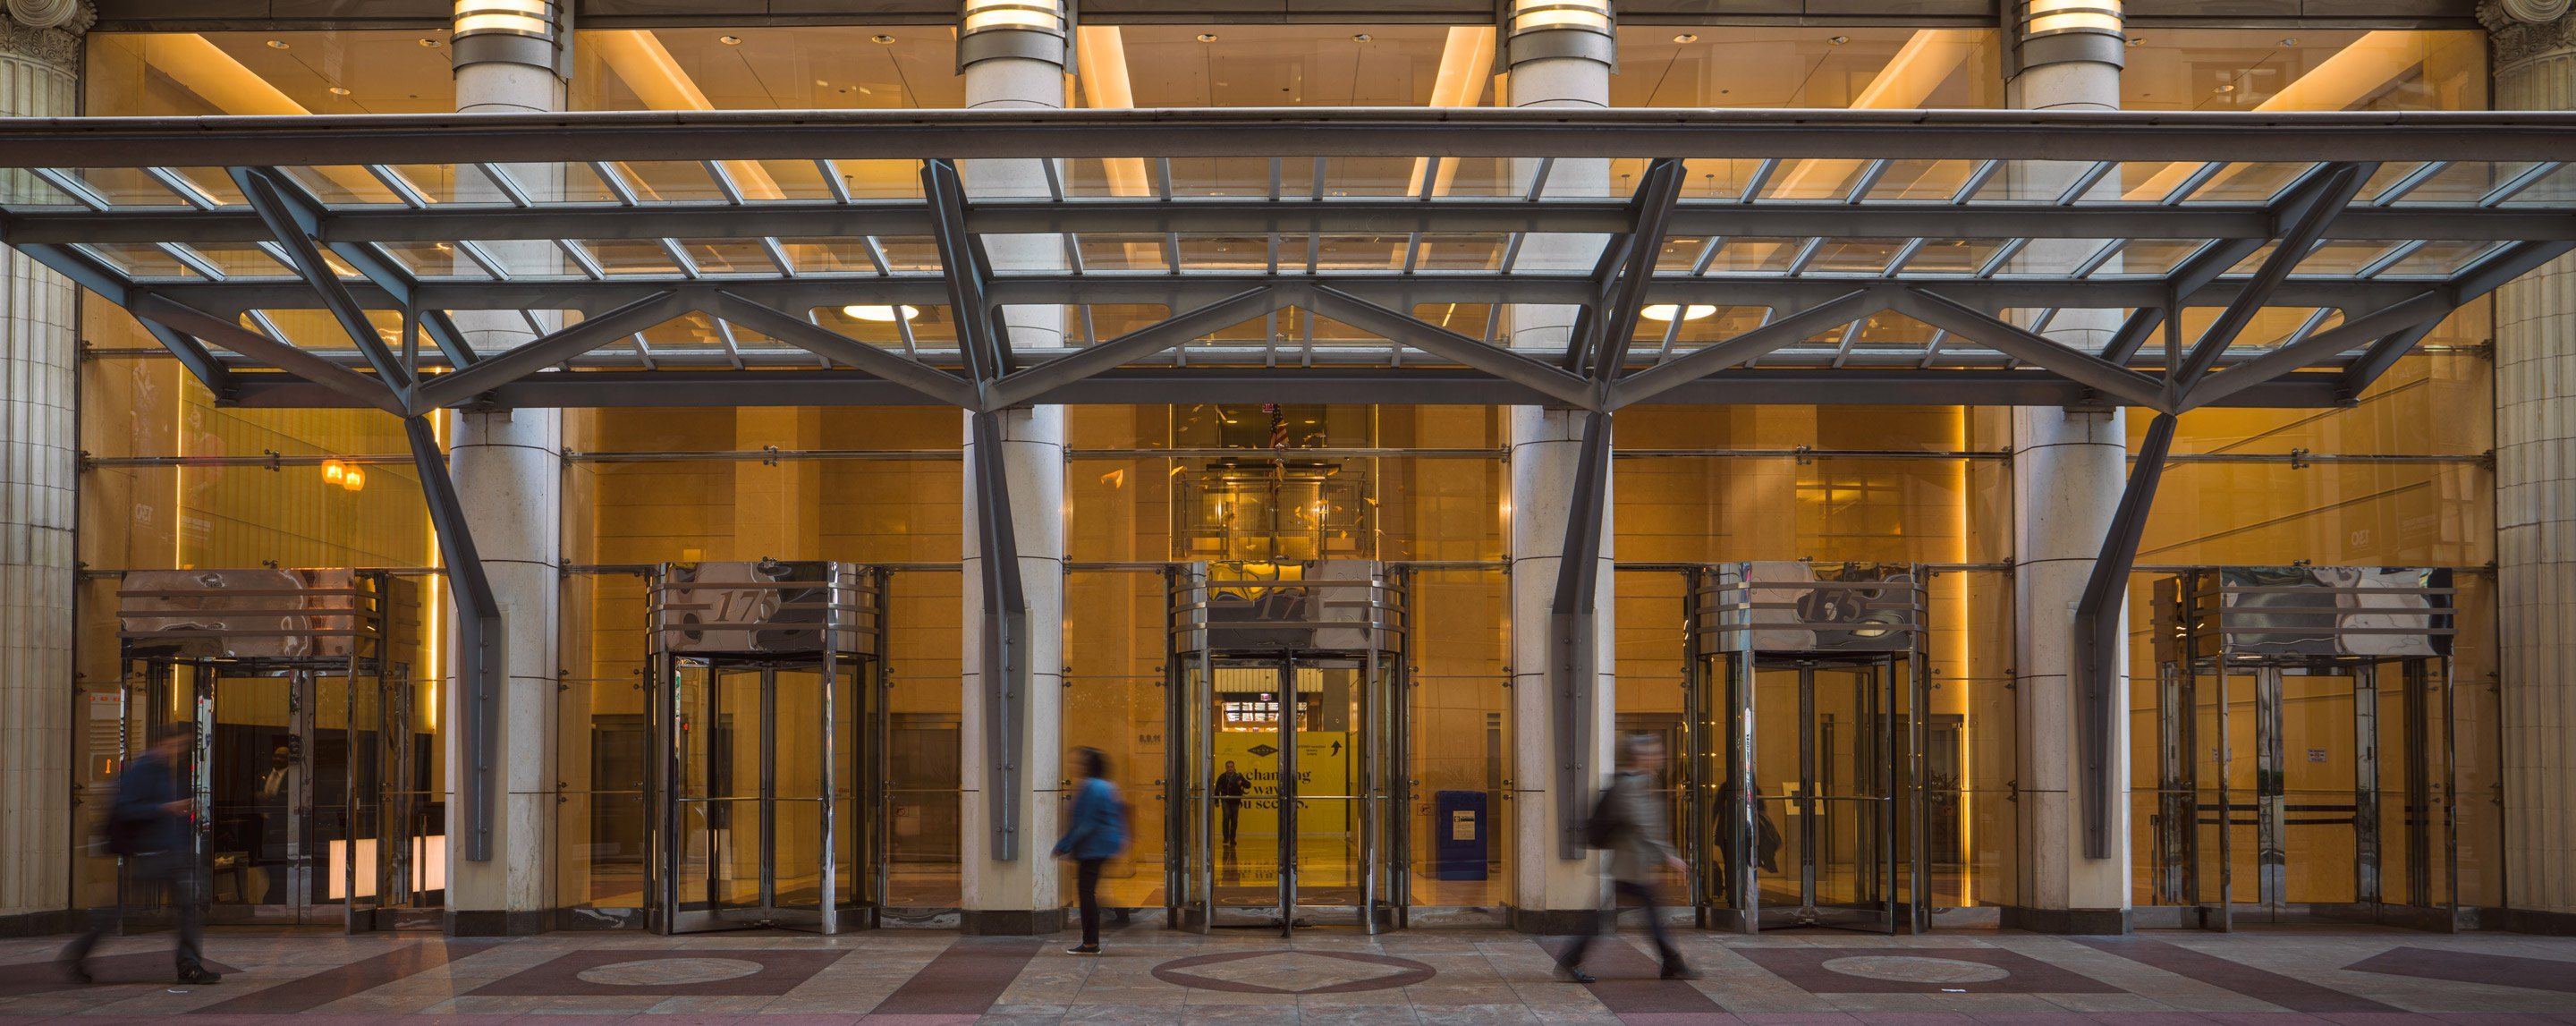 People walk past a glass entryway to a large building with five revolving doors.